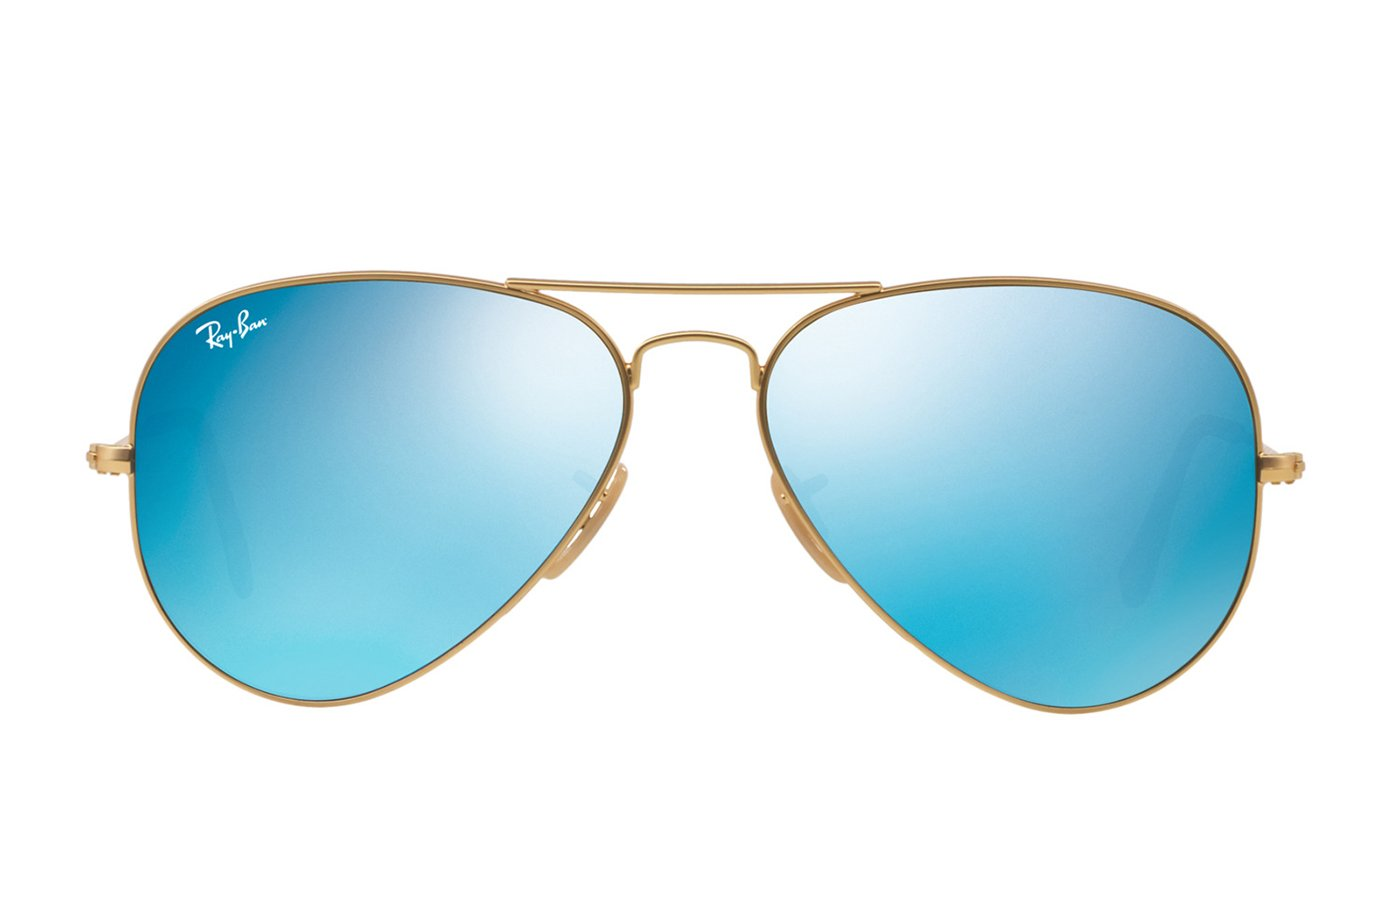 RAY-BAN AVIATOR LARGE METAL MATTE GOLD 0RB3025 58 112/17